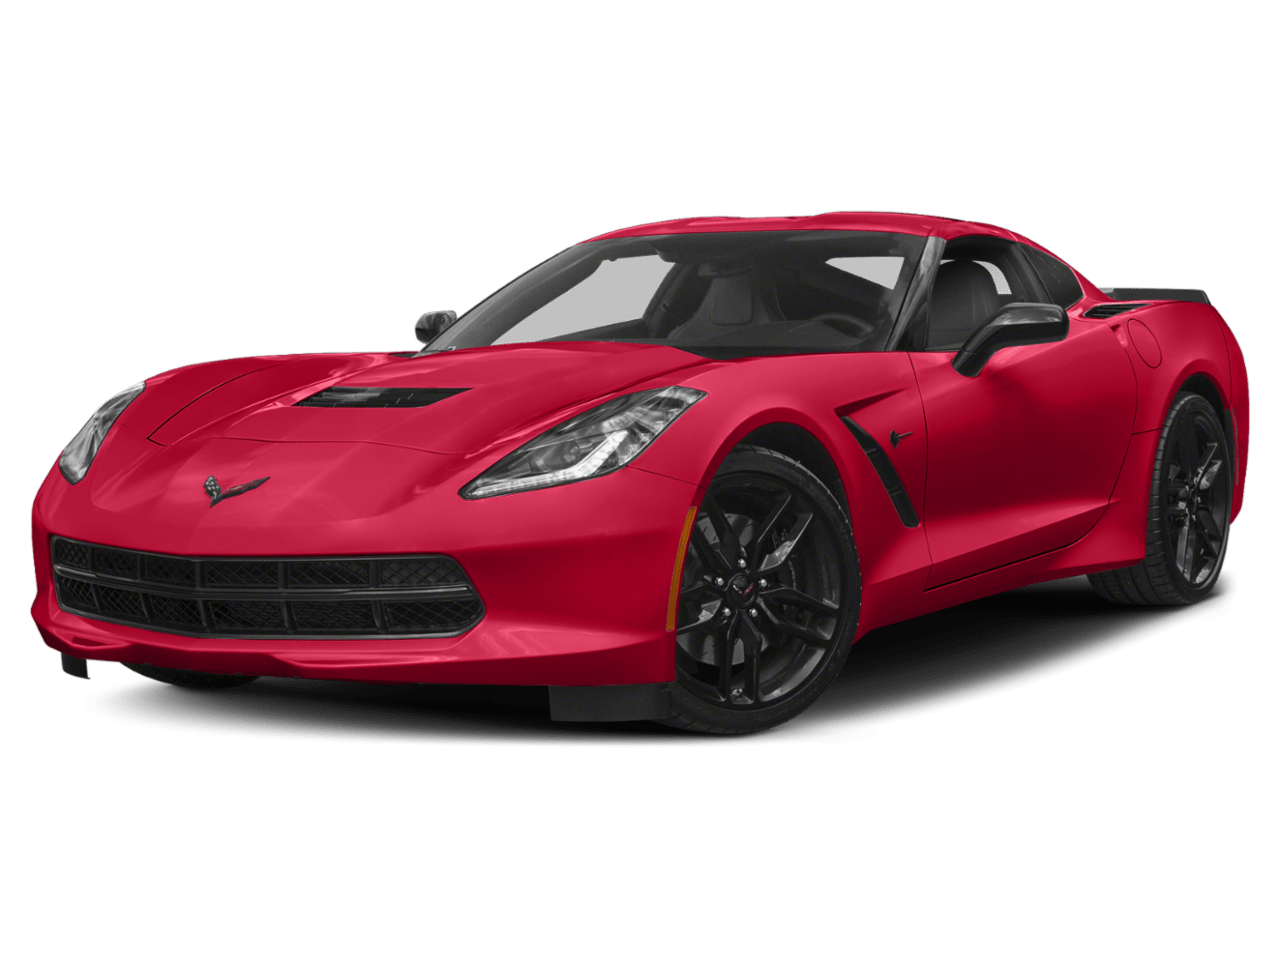 2019 Chevrolet Corvette Grand Sport 2LT W/ Z51 PACKAGE